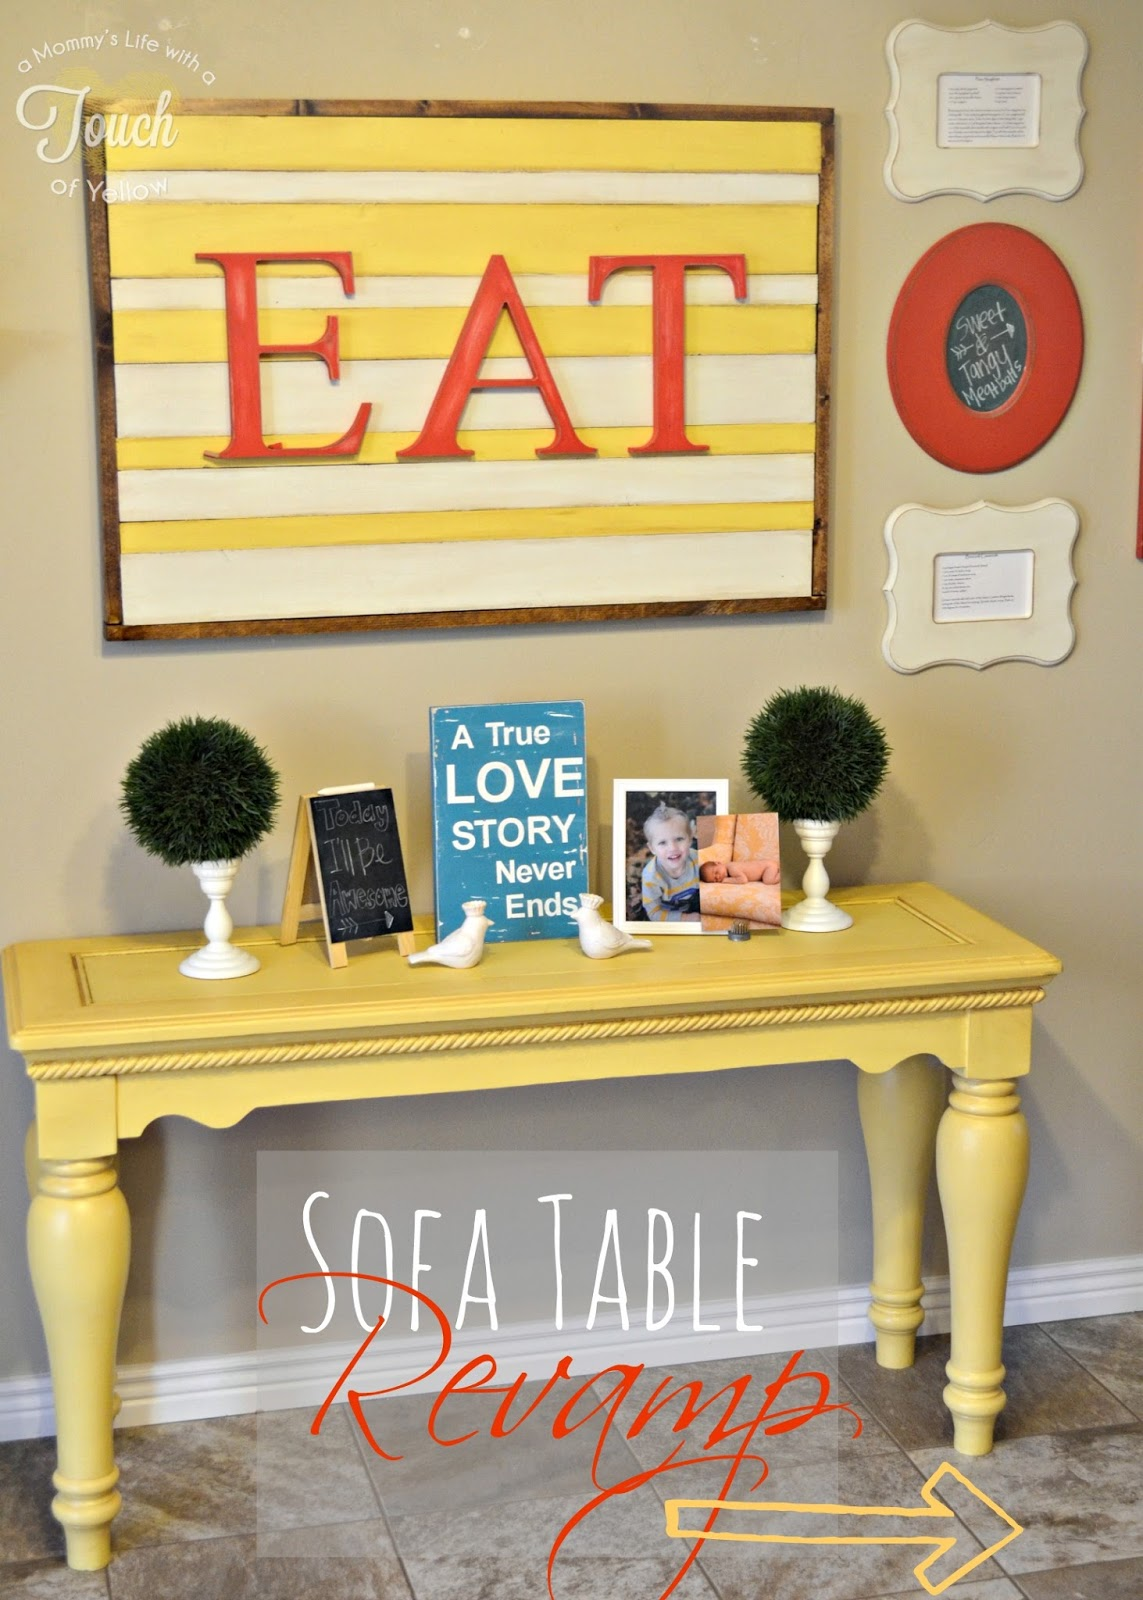 A mommy 39 s life with a touch of yellow sofa table revamp for Sofa table tutorial